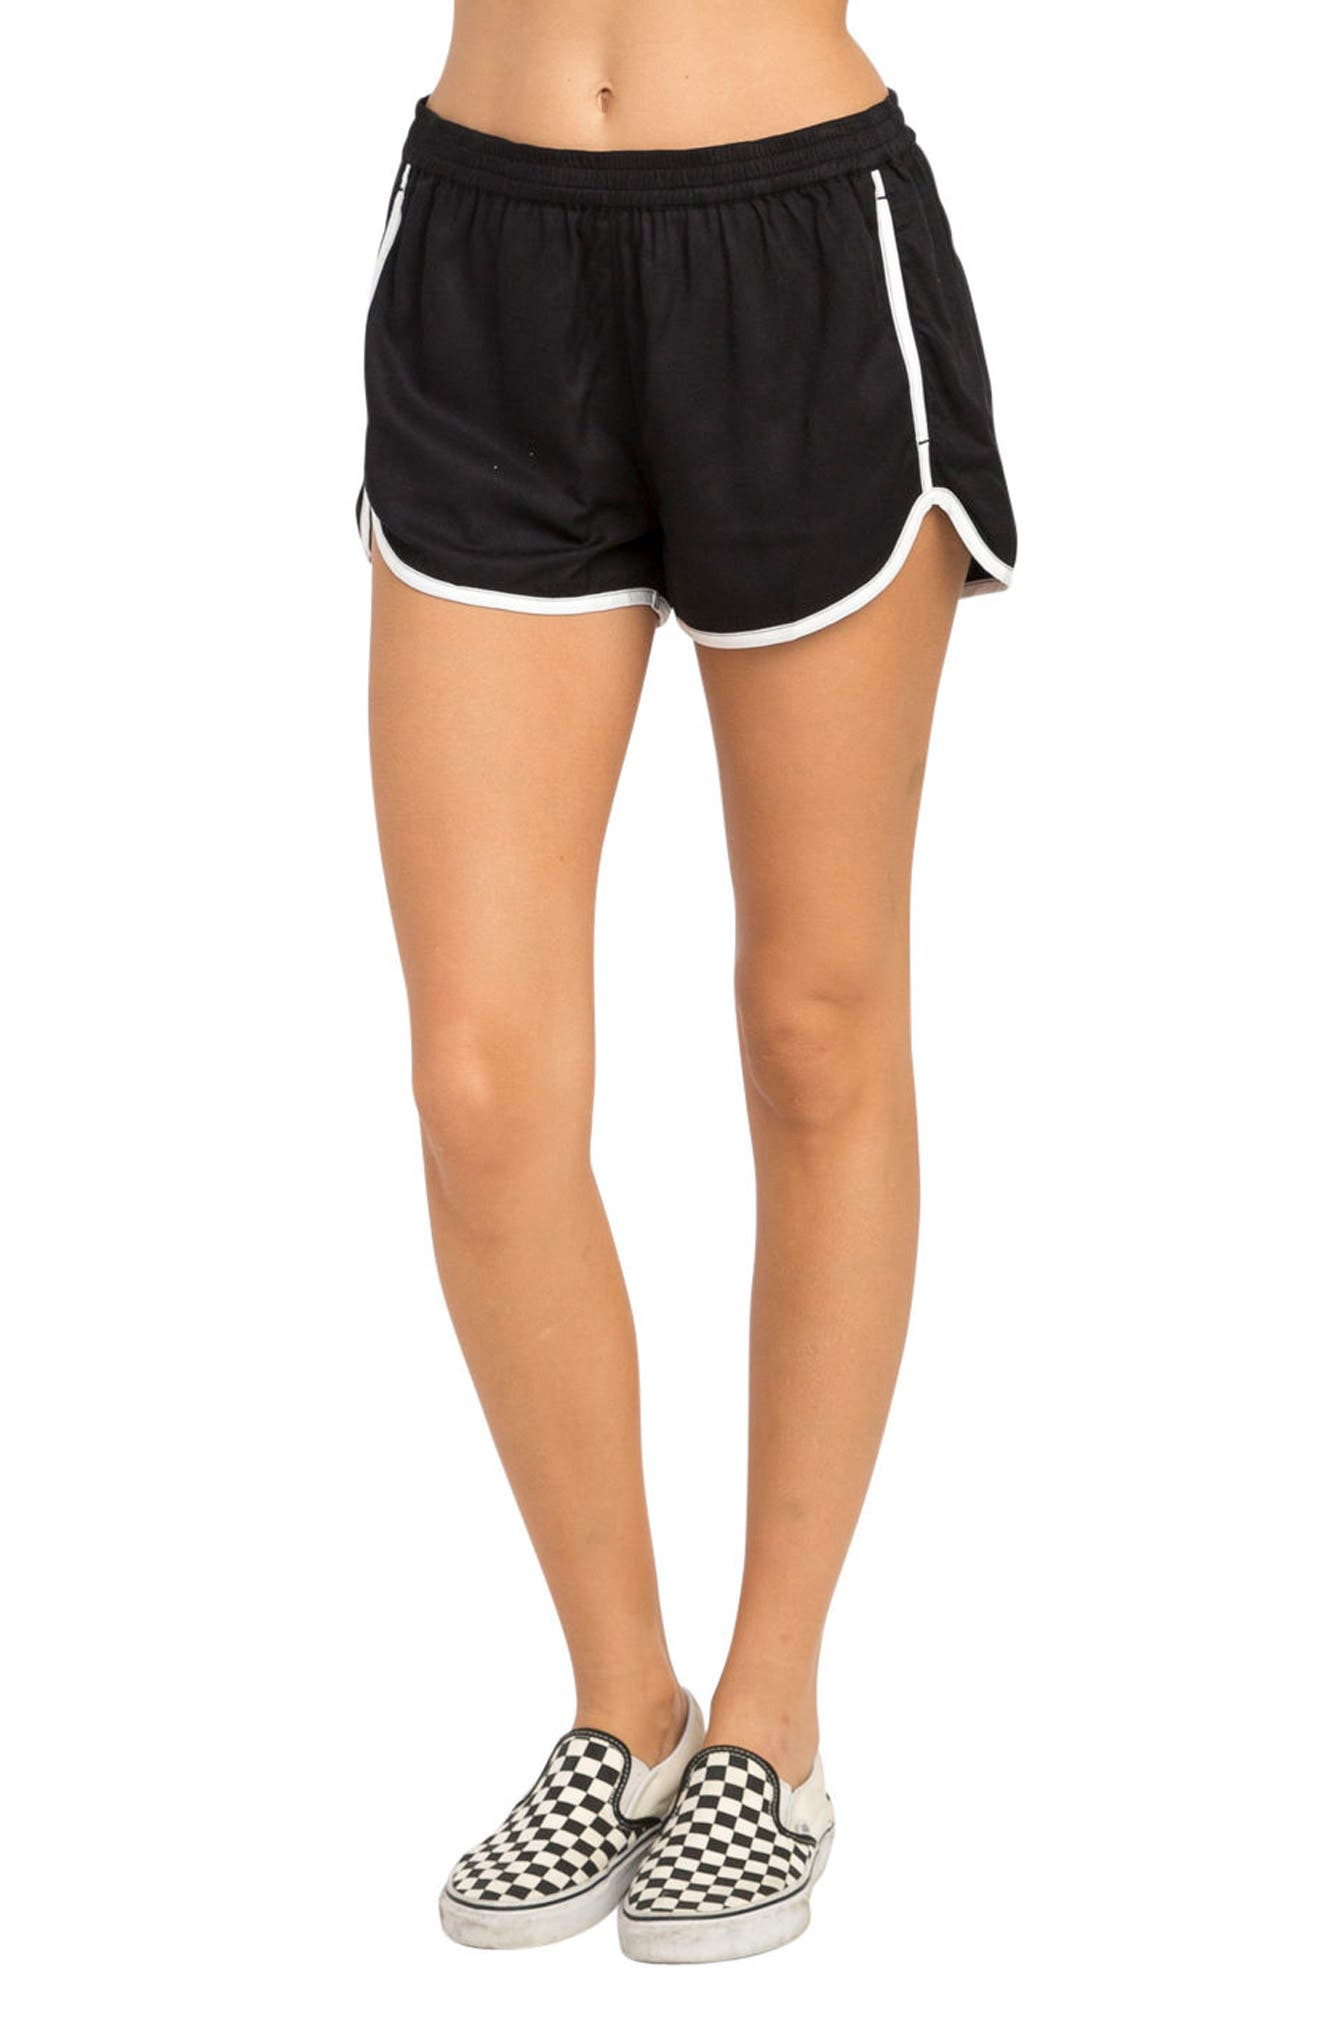 Cruising Dolphin Shorts,                             Main thumbnail 1, color,                             Black